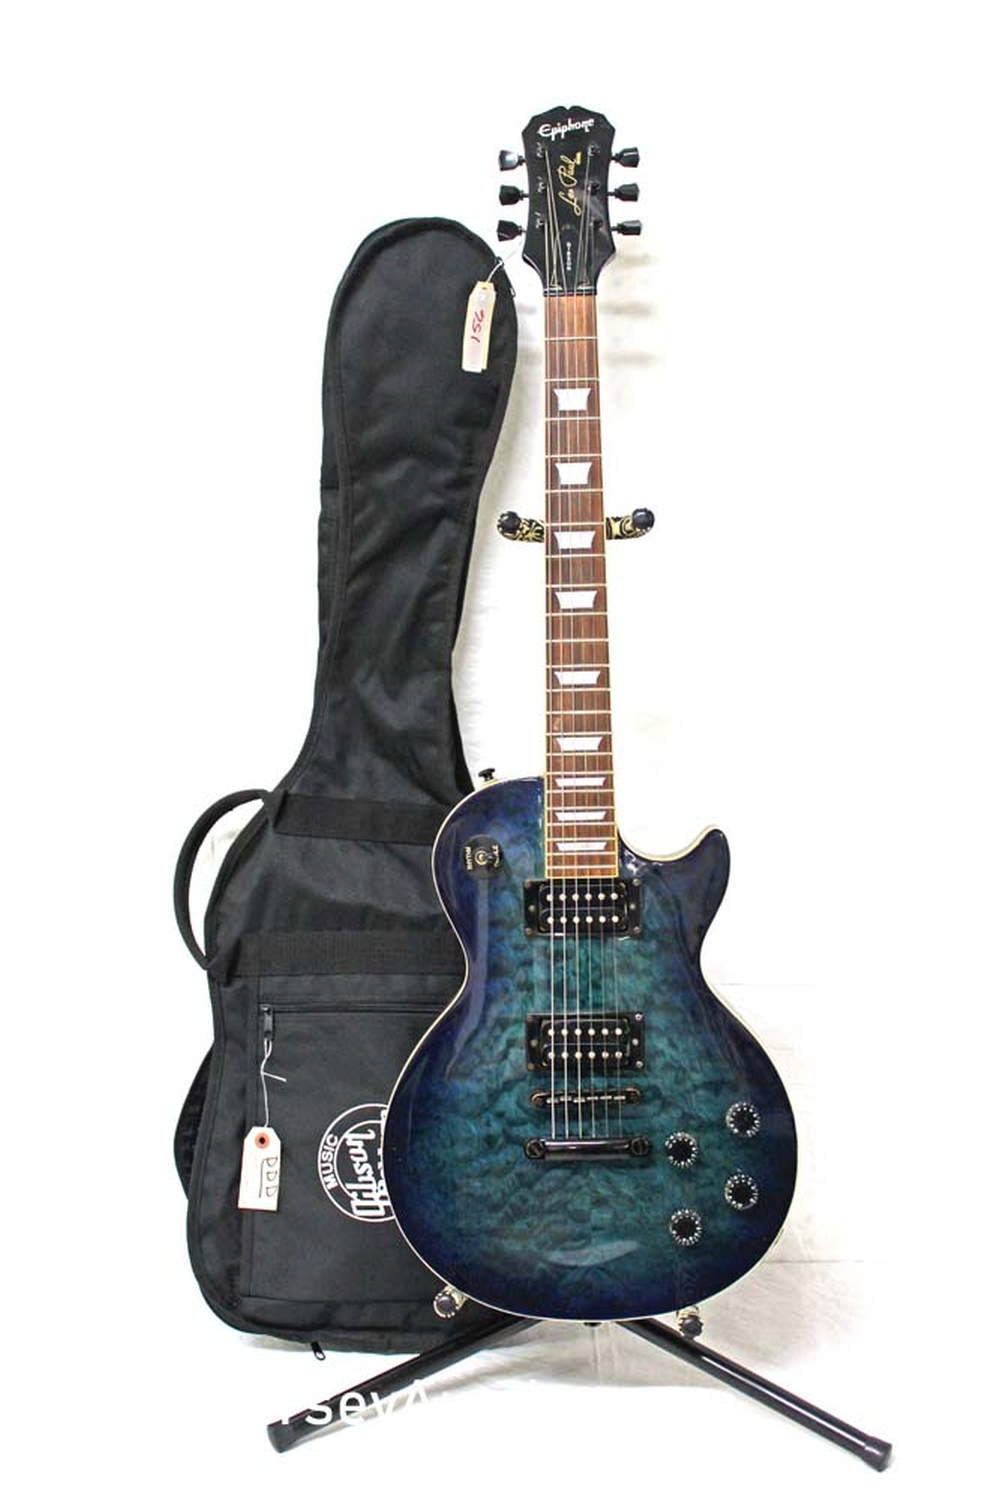 2001 Epiphone Les Paul Custom Shop birdseye maple in the blue, rosewood fretboard, s/n 101020702, some small, chips and belt wear, good condition with soft gig bag